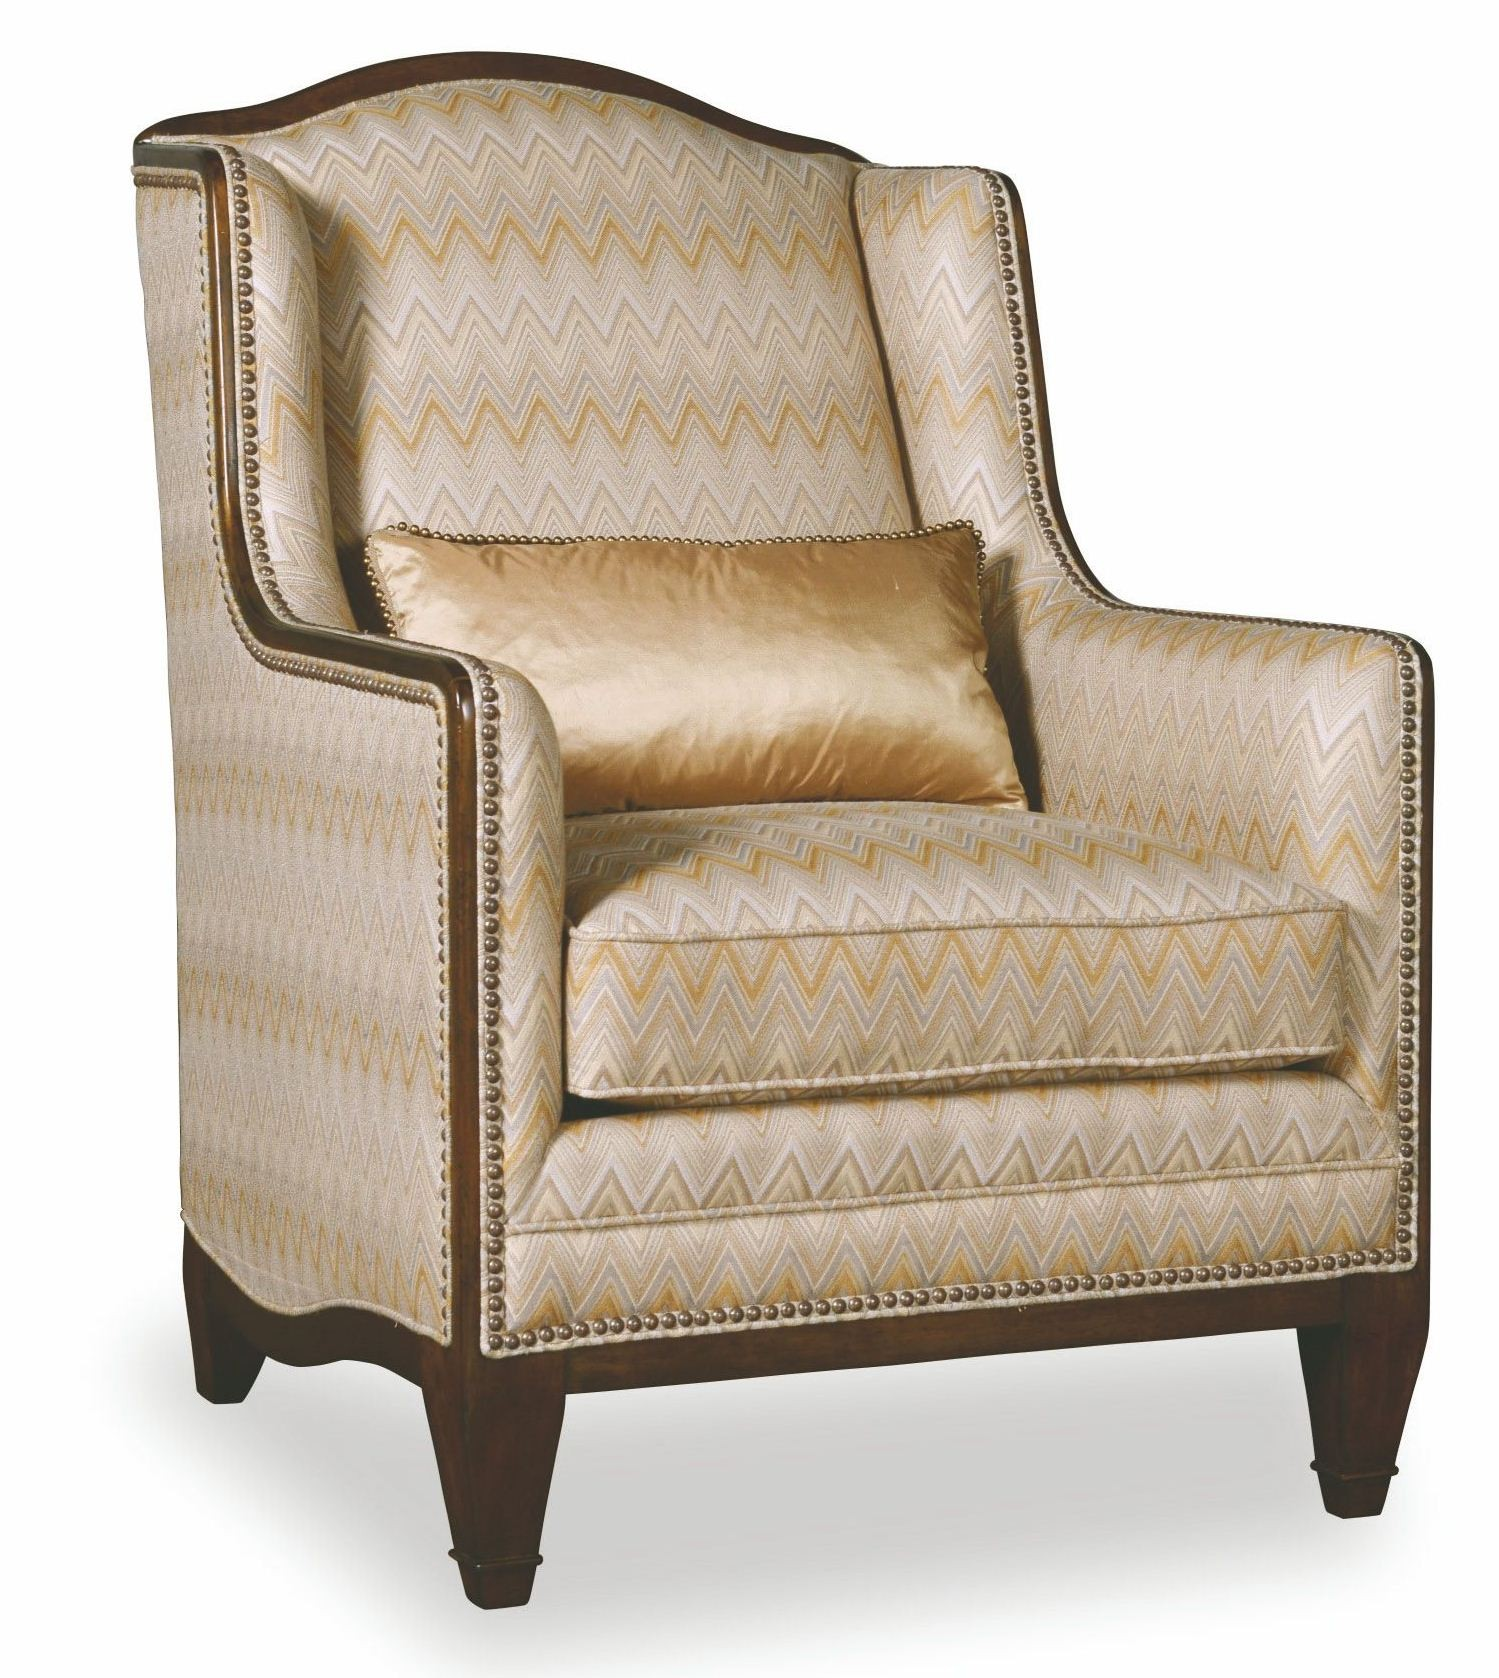 Ava Creme High Back Accent Chair From Art 513534 5001aa